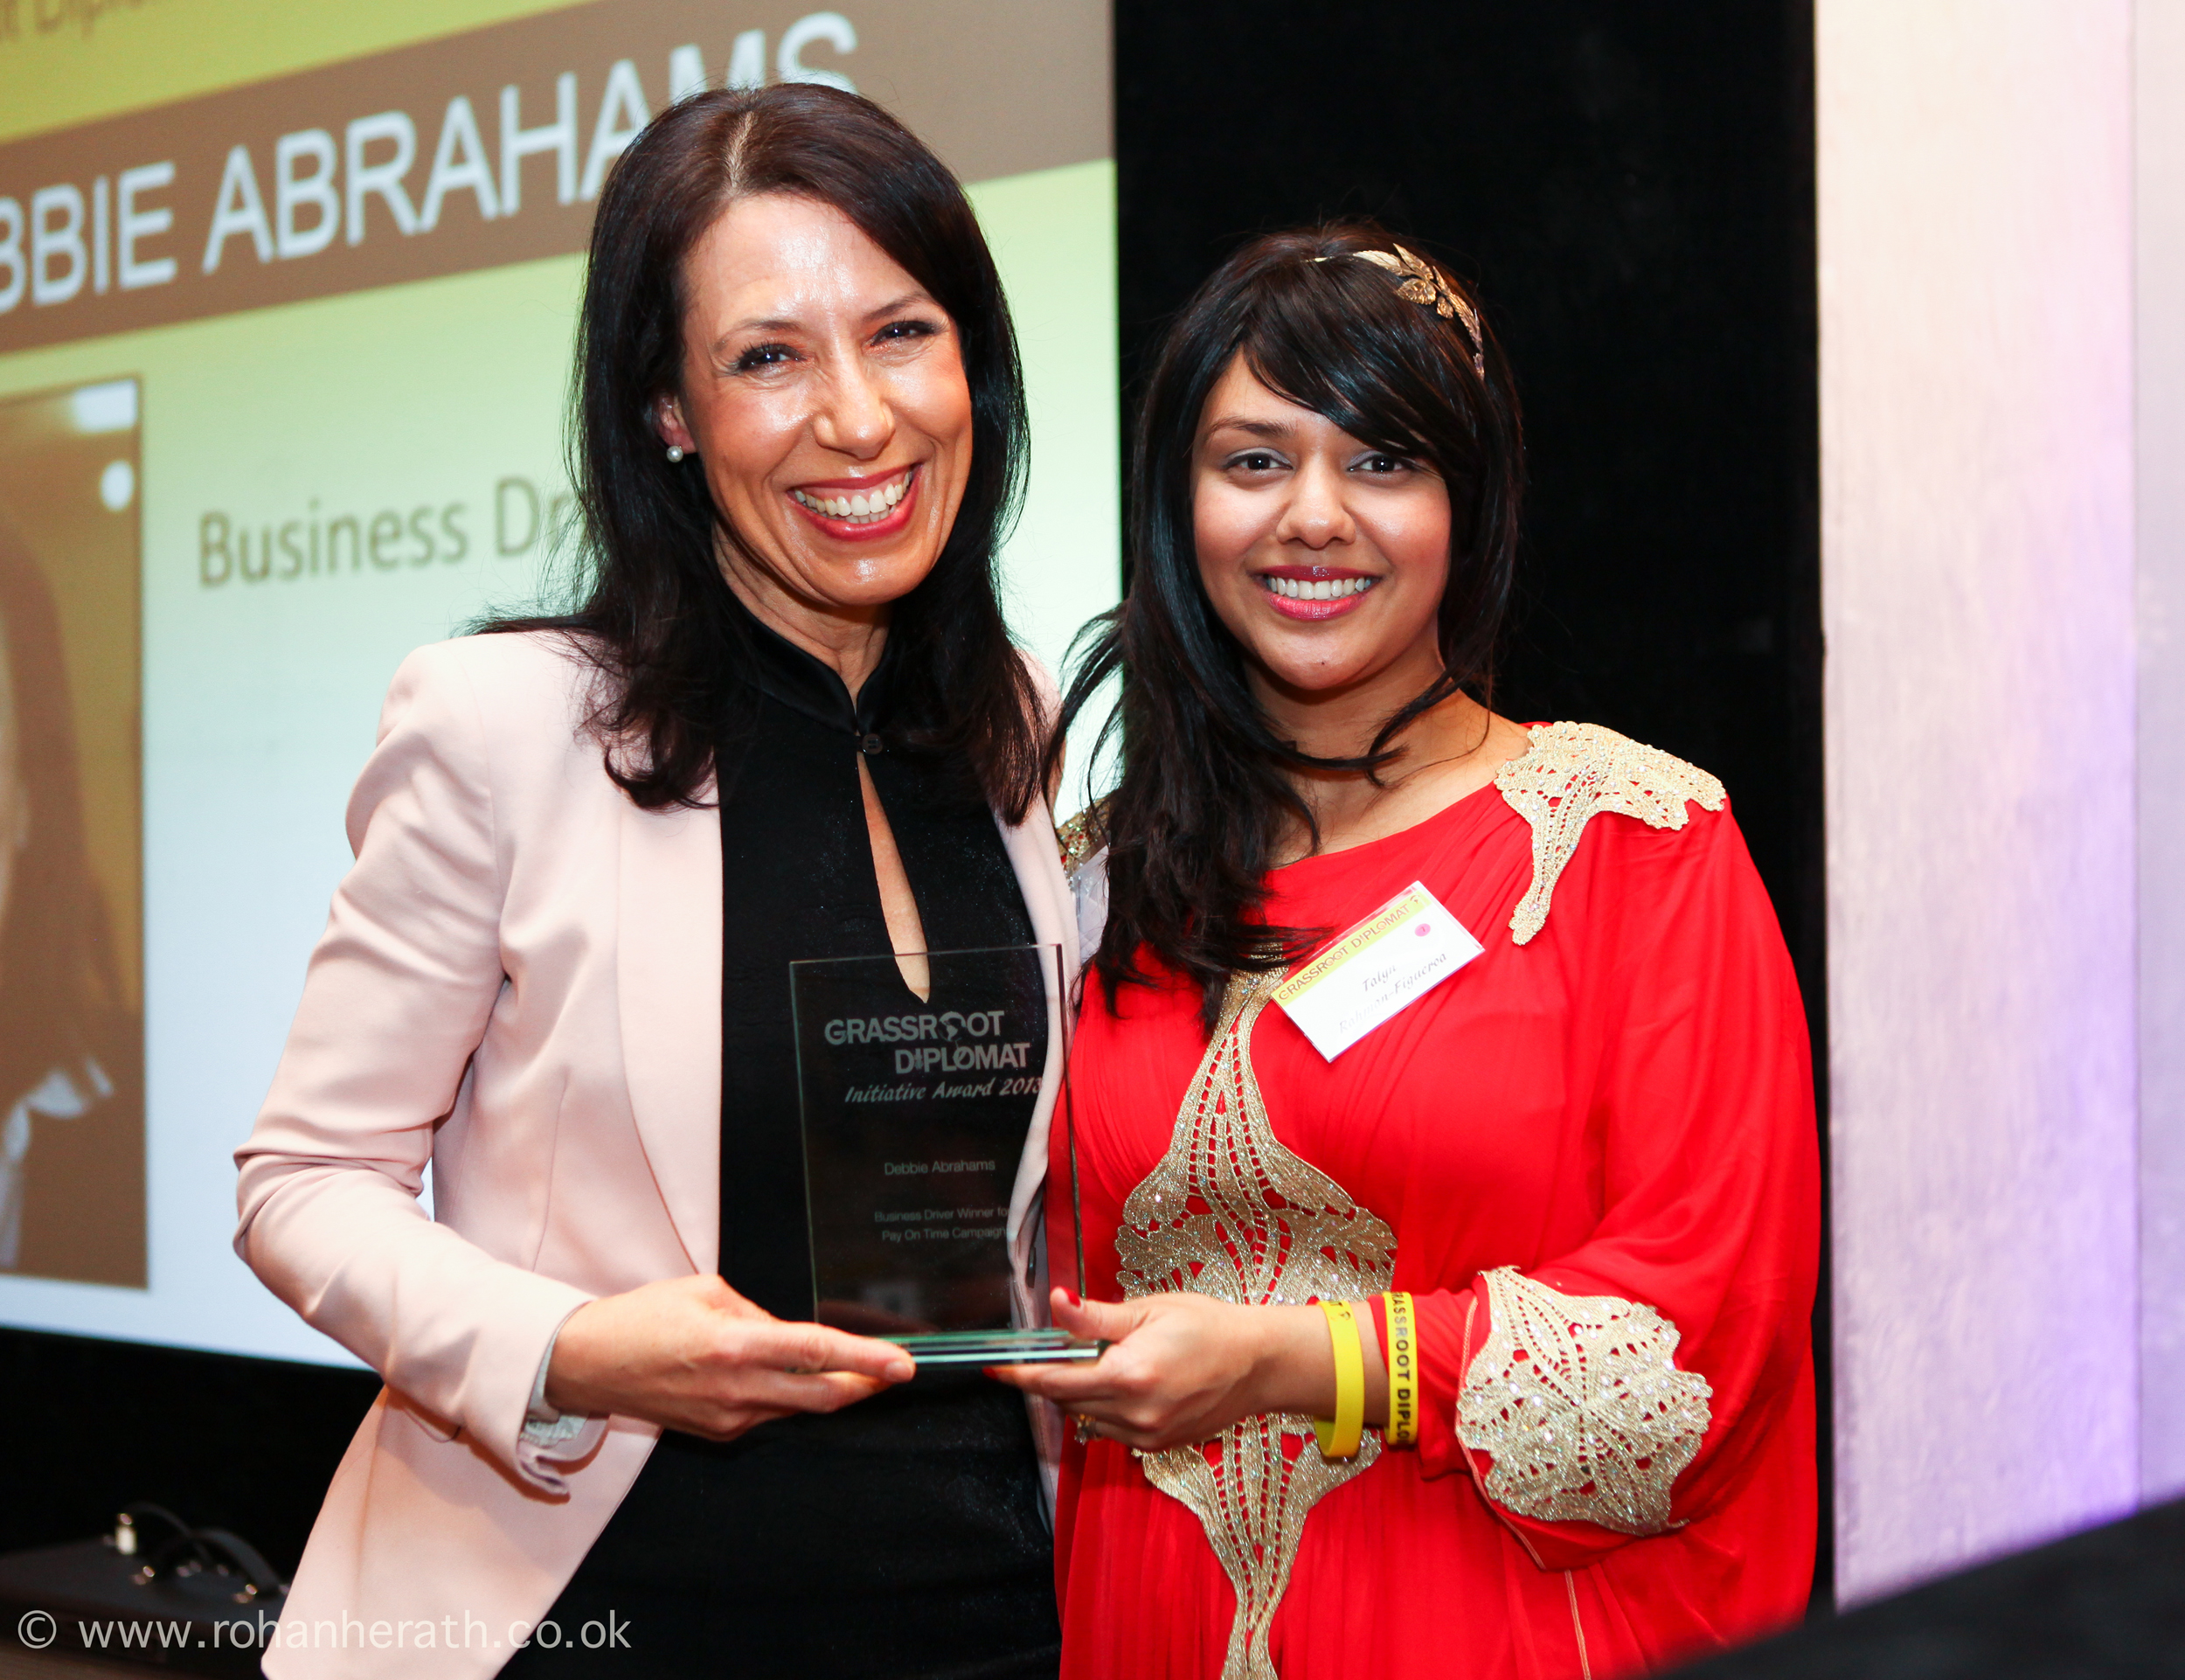 Debbie Abrahams MP and Talyn Rahman-Figueroa